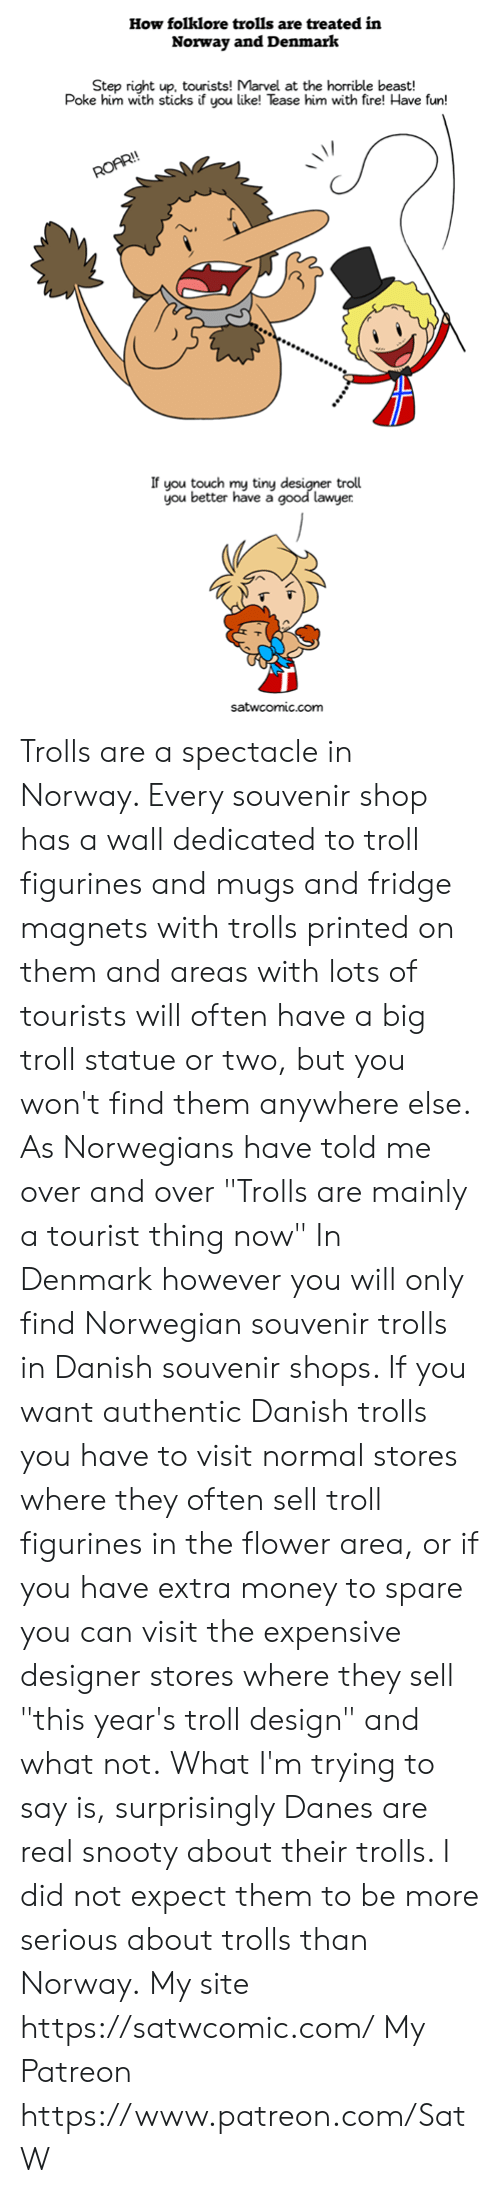 "Tourist: How folklore trolls are treated in  Norway and Denmark  Step right up, tourists! Marvel at the horrible beast!  Poke him with sticks if you like! Tease him with fire! Have fun!  If you touch my tinyd  you better have a  troll  good lawyer  satwcomic.com Trolls are a spectacle in Norway. Every souvenir shop has a wall dedicated to troll figurines and mugs and fridge magnets with trolls printed on them and areas with lots of tourists will often have a big troll statue or two, but you won't find them anywhere else. As Norwegians have told me over and over ""Trolls are mainly a tourist thing now""  In Denmark however you will only find Norwegian souvenir trolls in Danish souvenir shops. If you want authentic Danish trolls you have to visit normal stores where they often sell troll figurines in the flower area, or if you have extra money to spare you can visit the expensive designer stores where they sell ""this year's troll design"" and what not.  What I'm trying to say is, surprisingly Danes are real snooty about their trolls. I did not expect them to be more serious about trolls than Norway.  My site https://satwcomic.com/ My Patreon https://www.patreon.com/SatW"